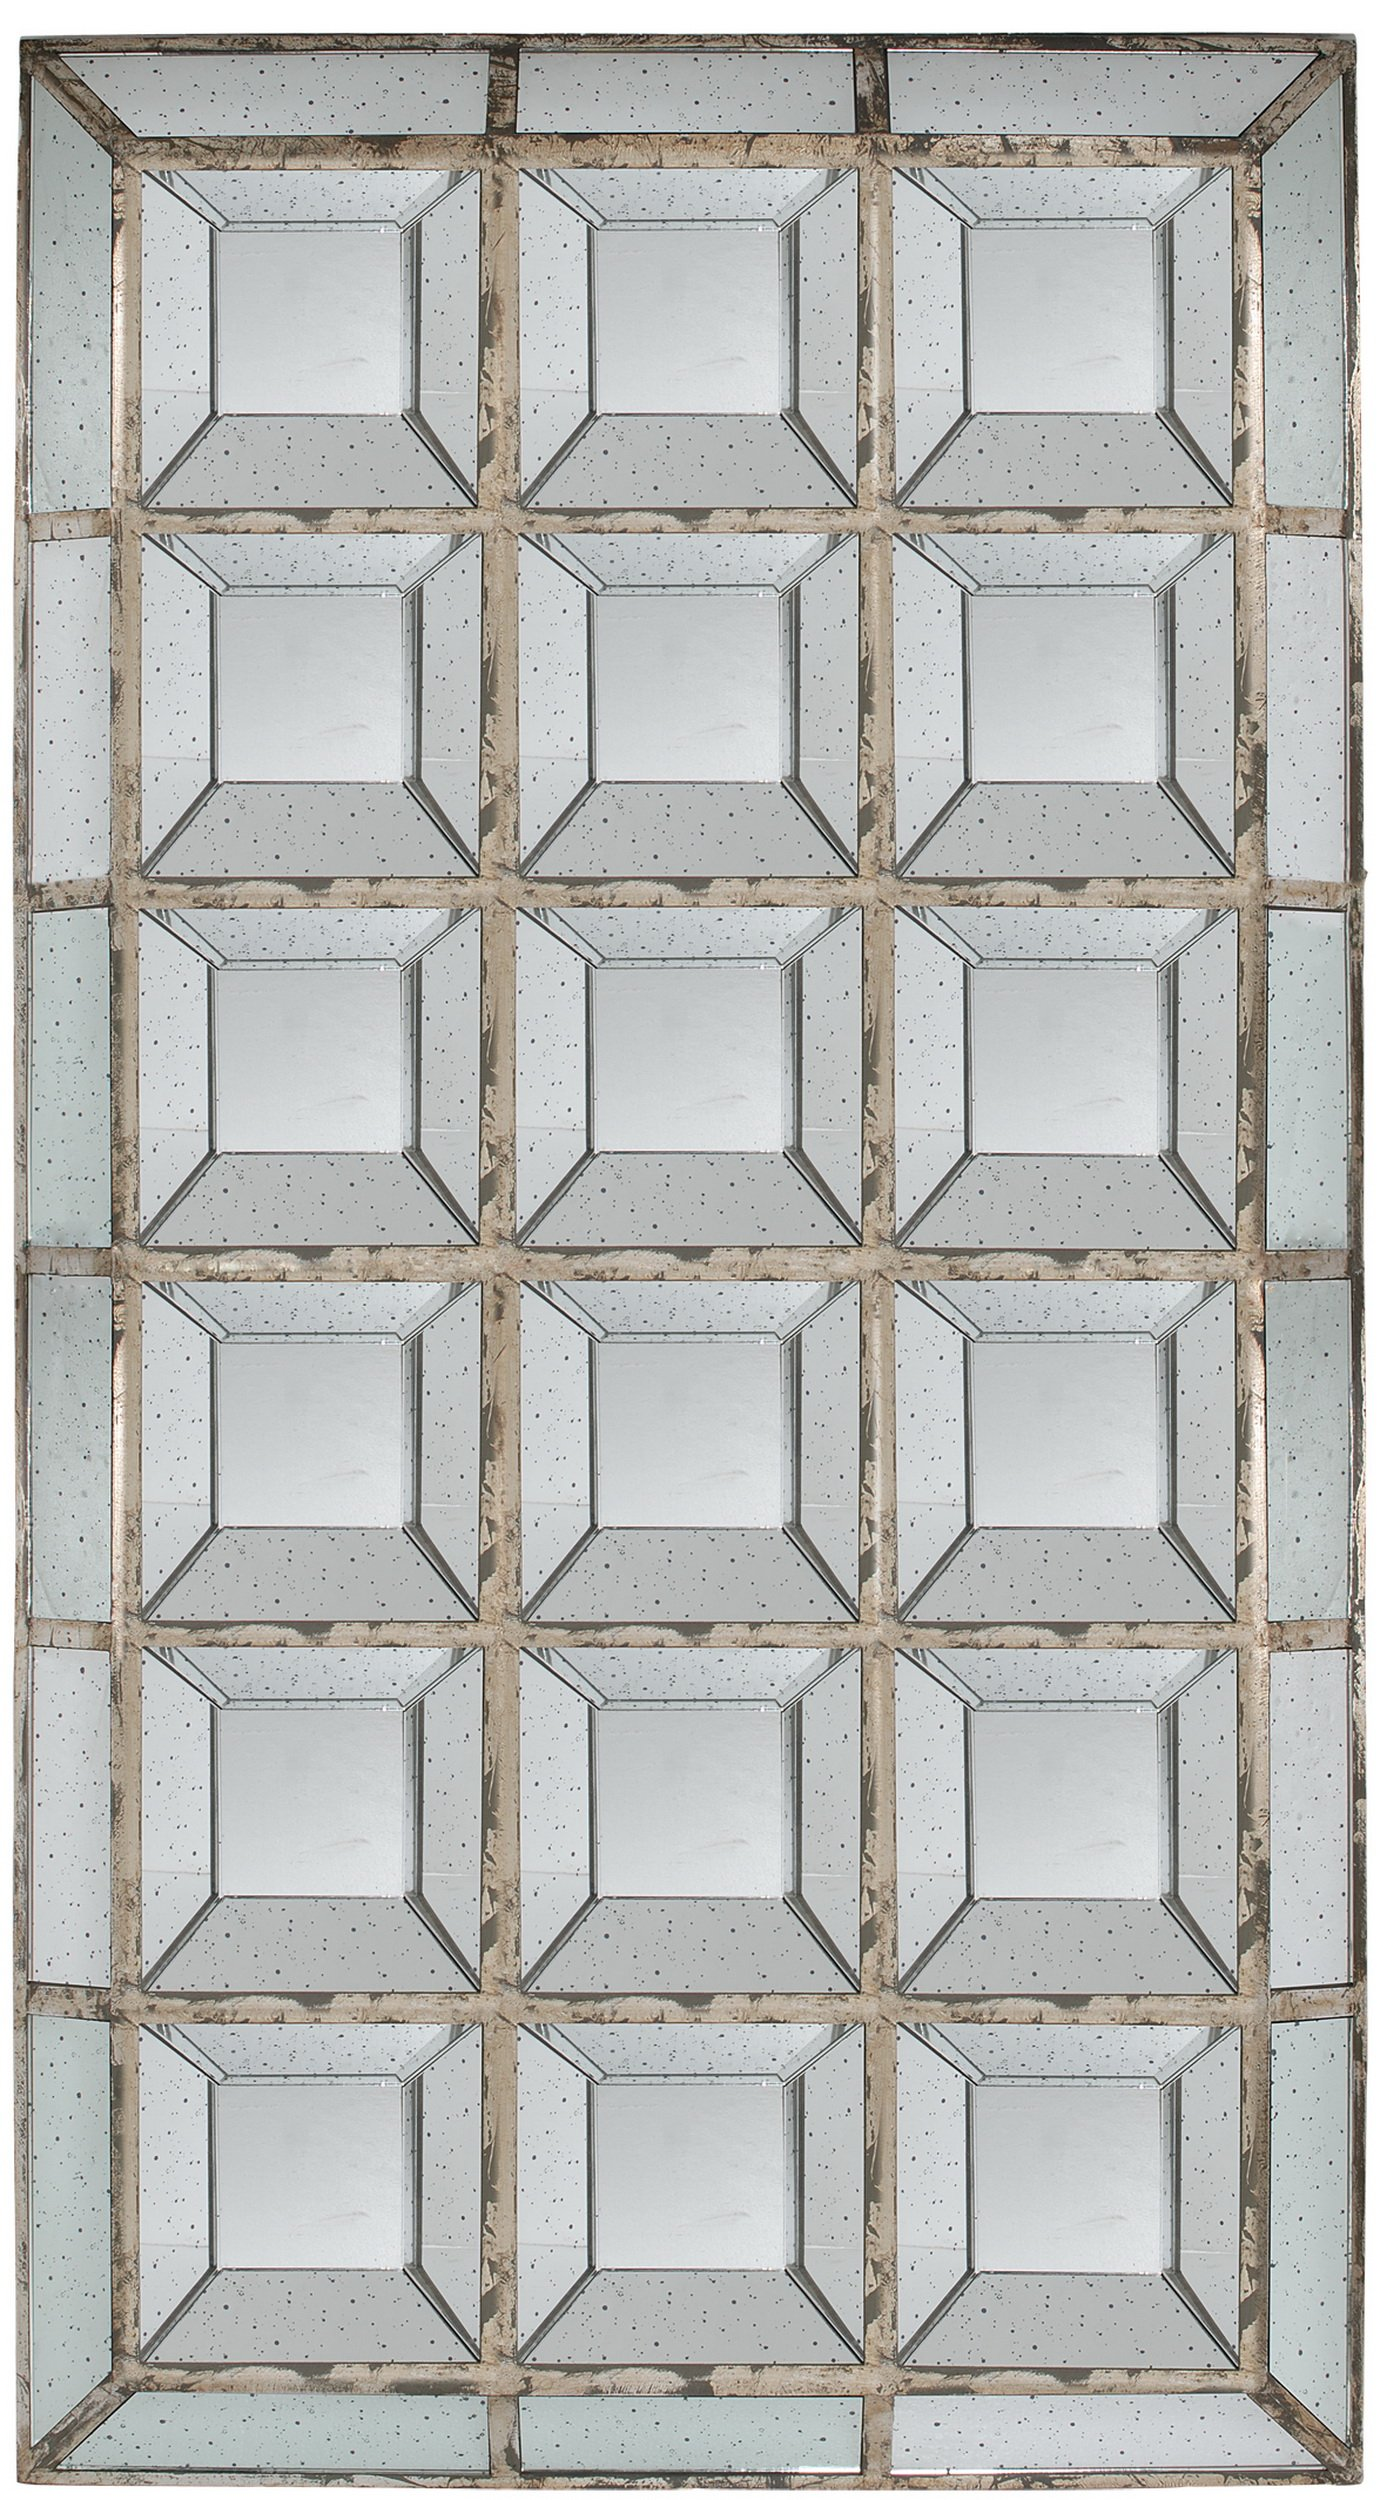 A&B Home Cubix Mirror, 46.1 by 3.2 by 82.7-Inch